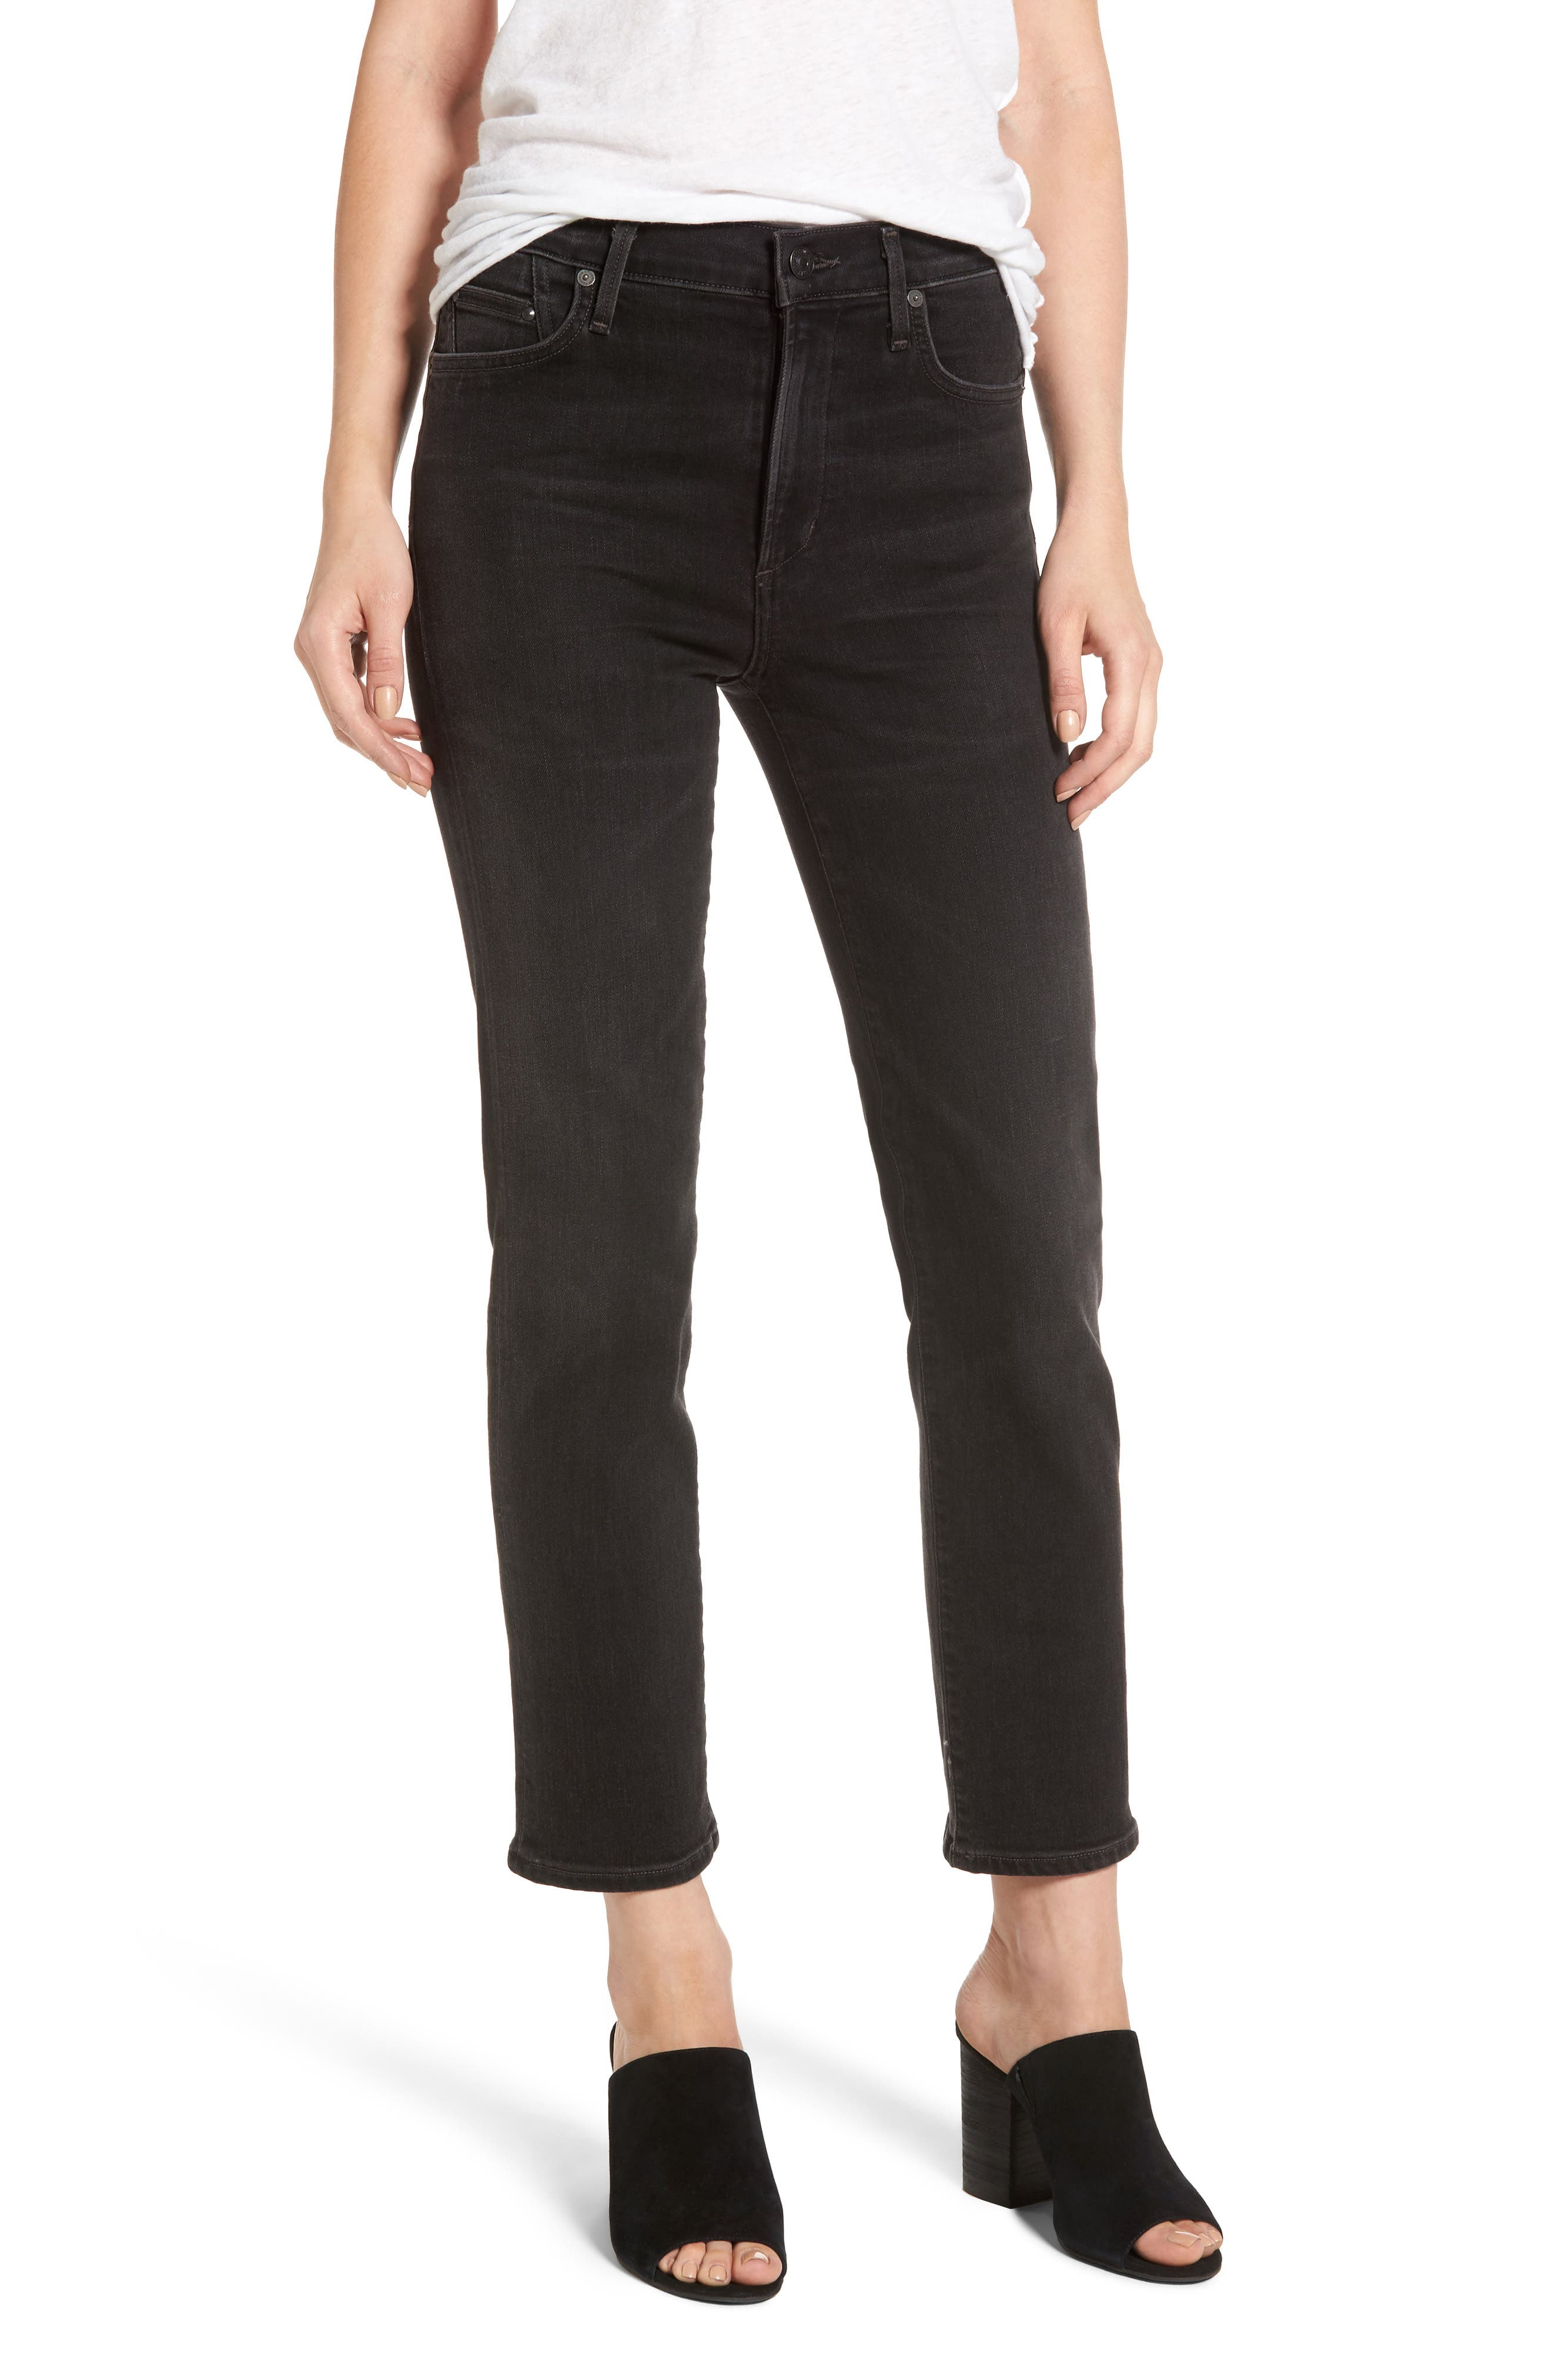 Cara Ankle Cigarette Jeans,                         Main,                         color, Darkness